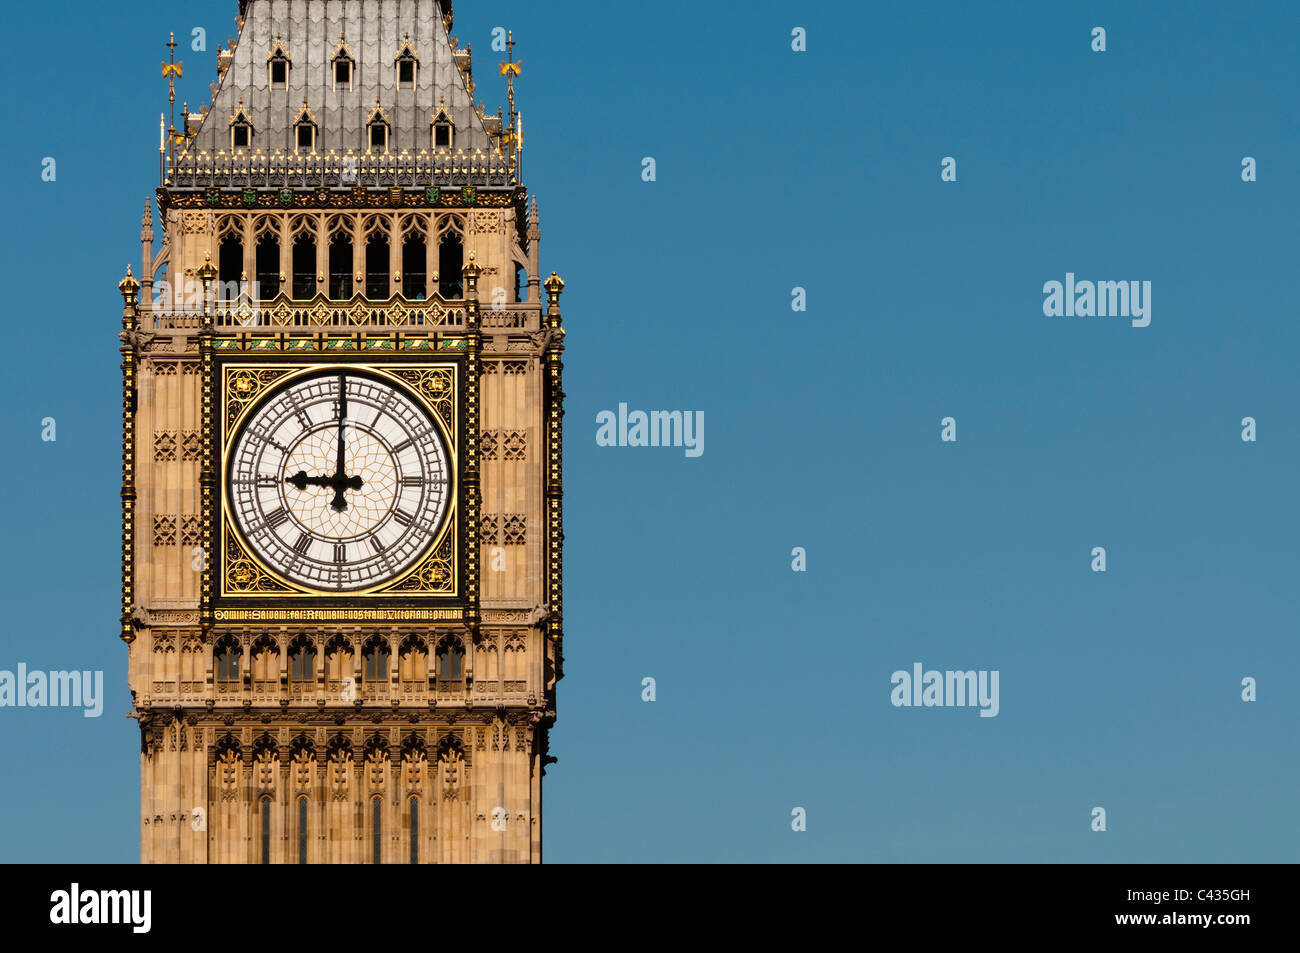 Big Ben Clock Closeup,London,England,UK - Stock Image